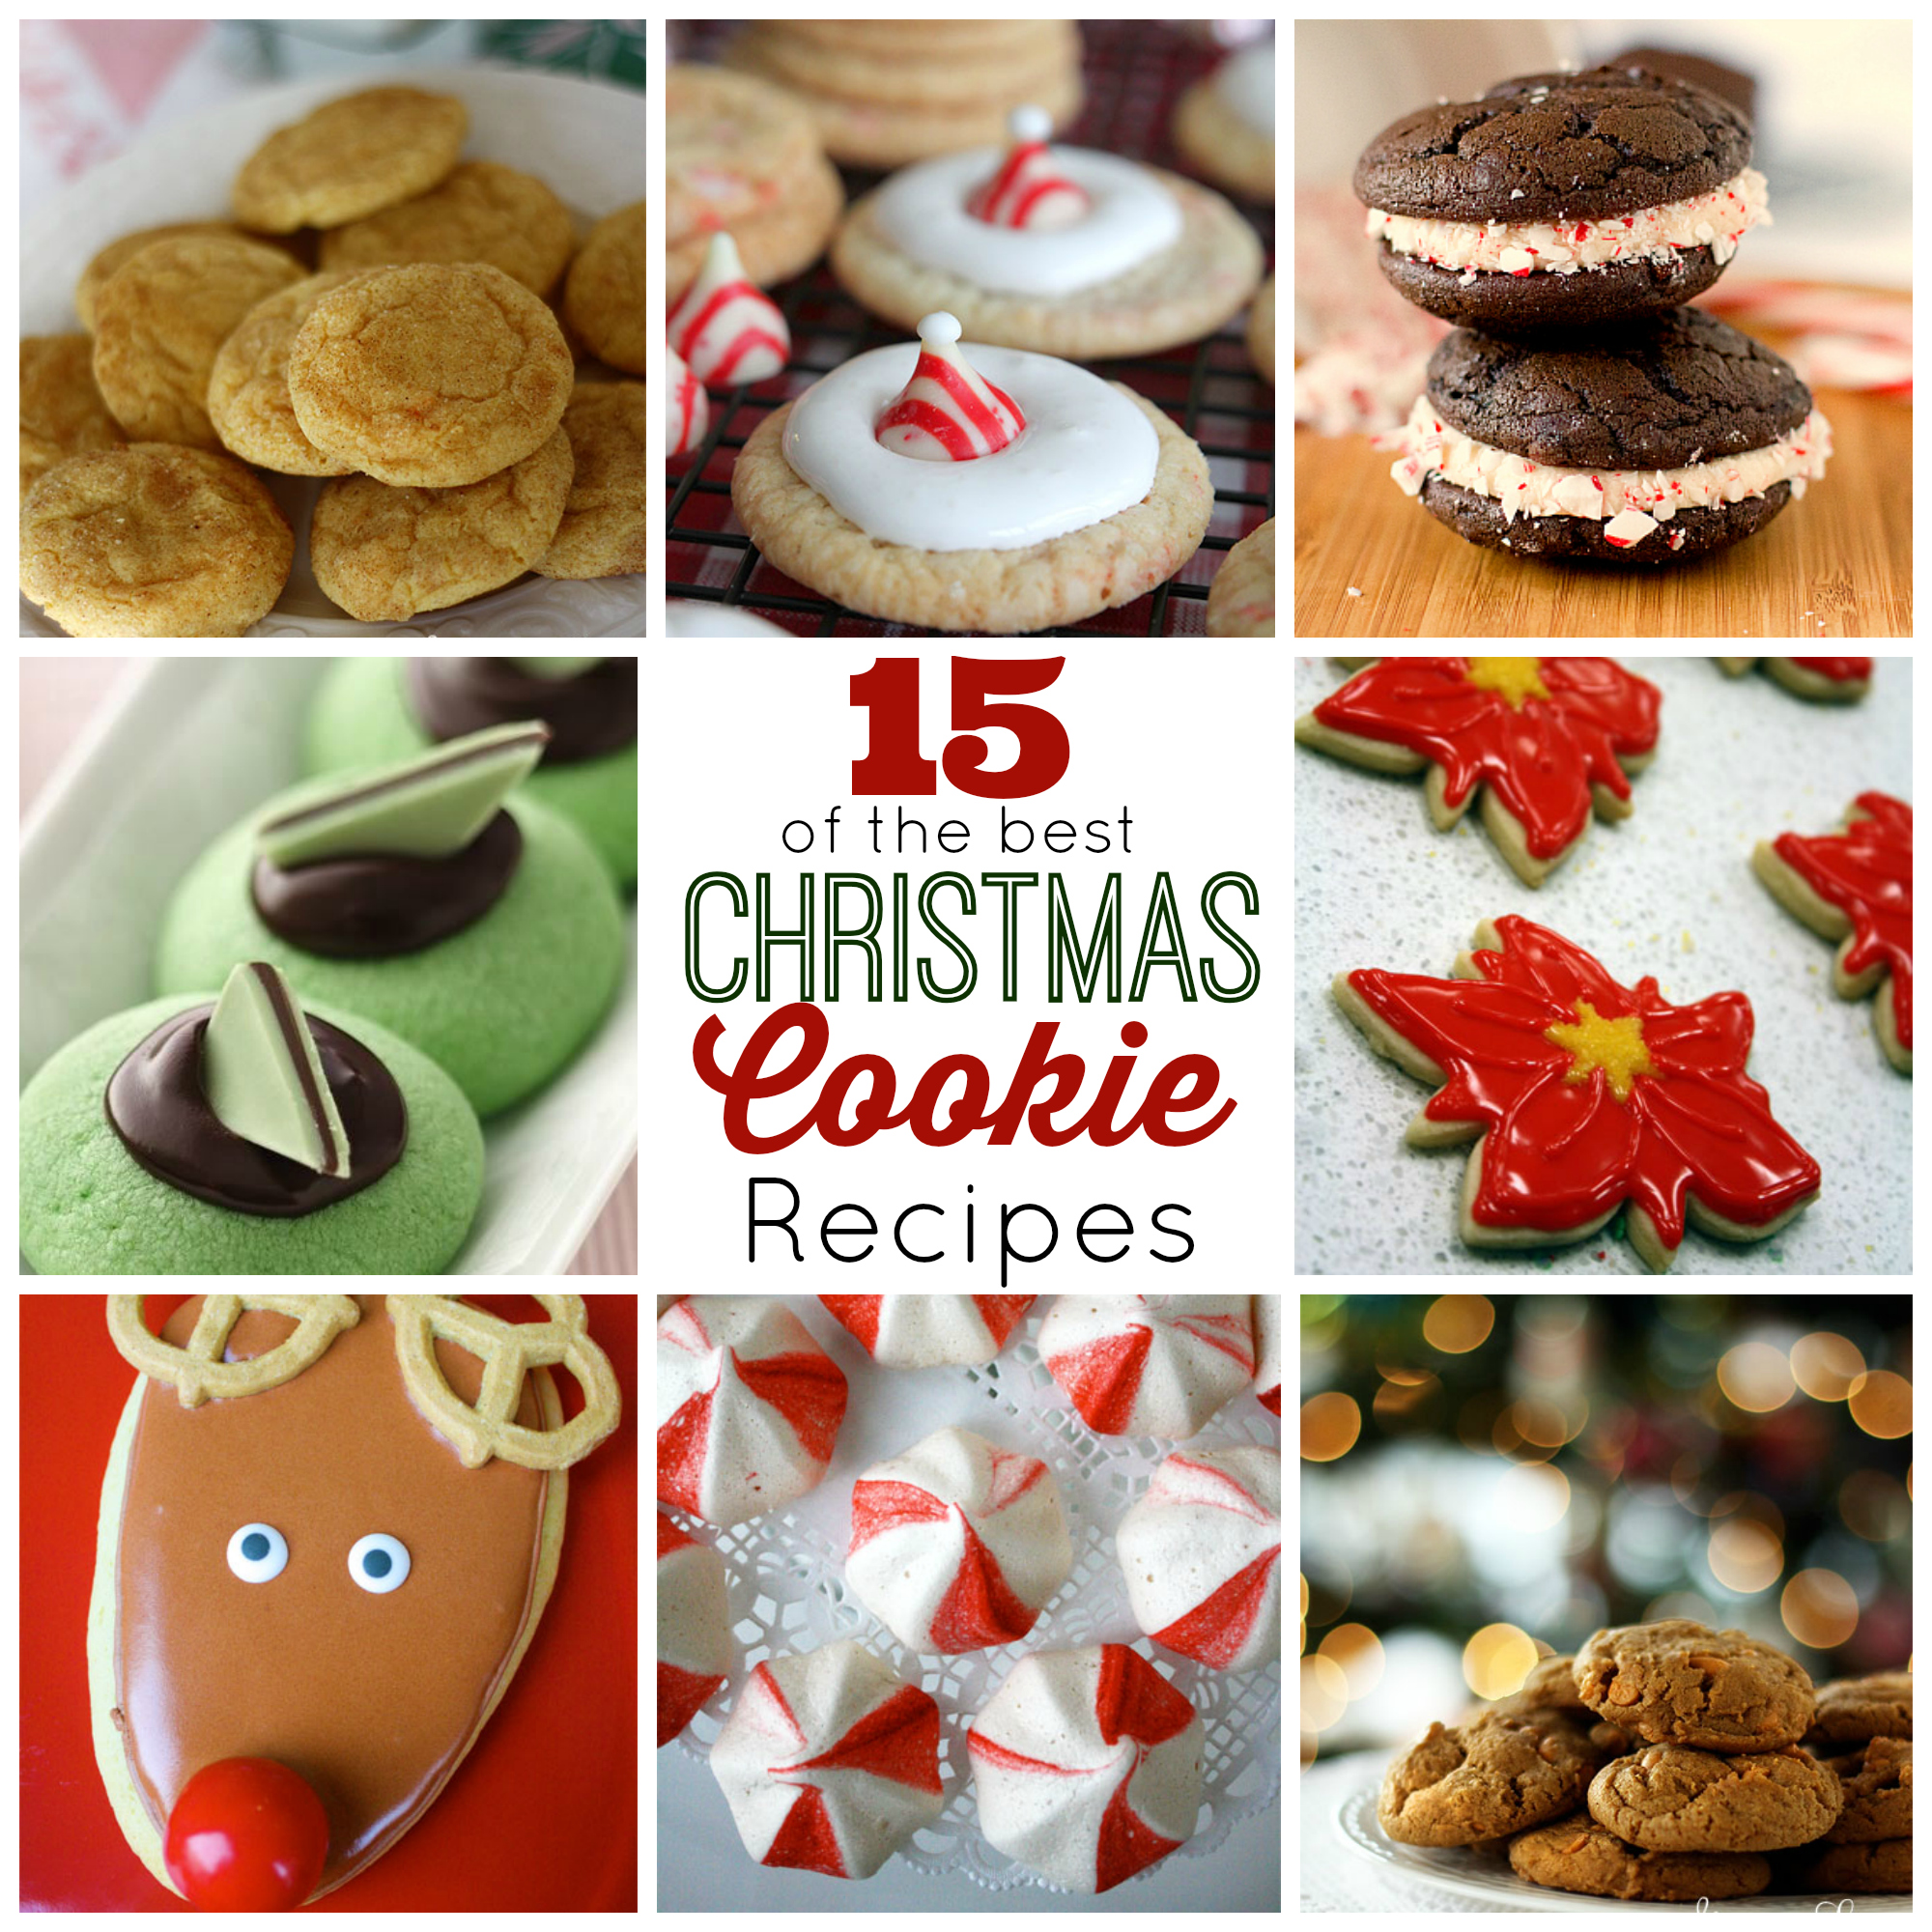 chirstmas cookie recipes